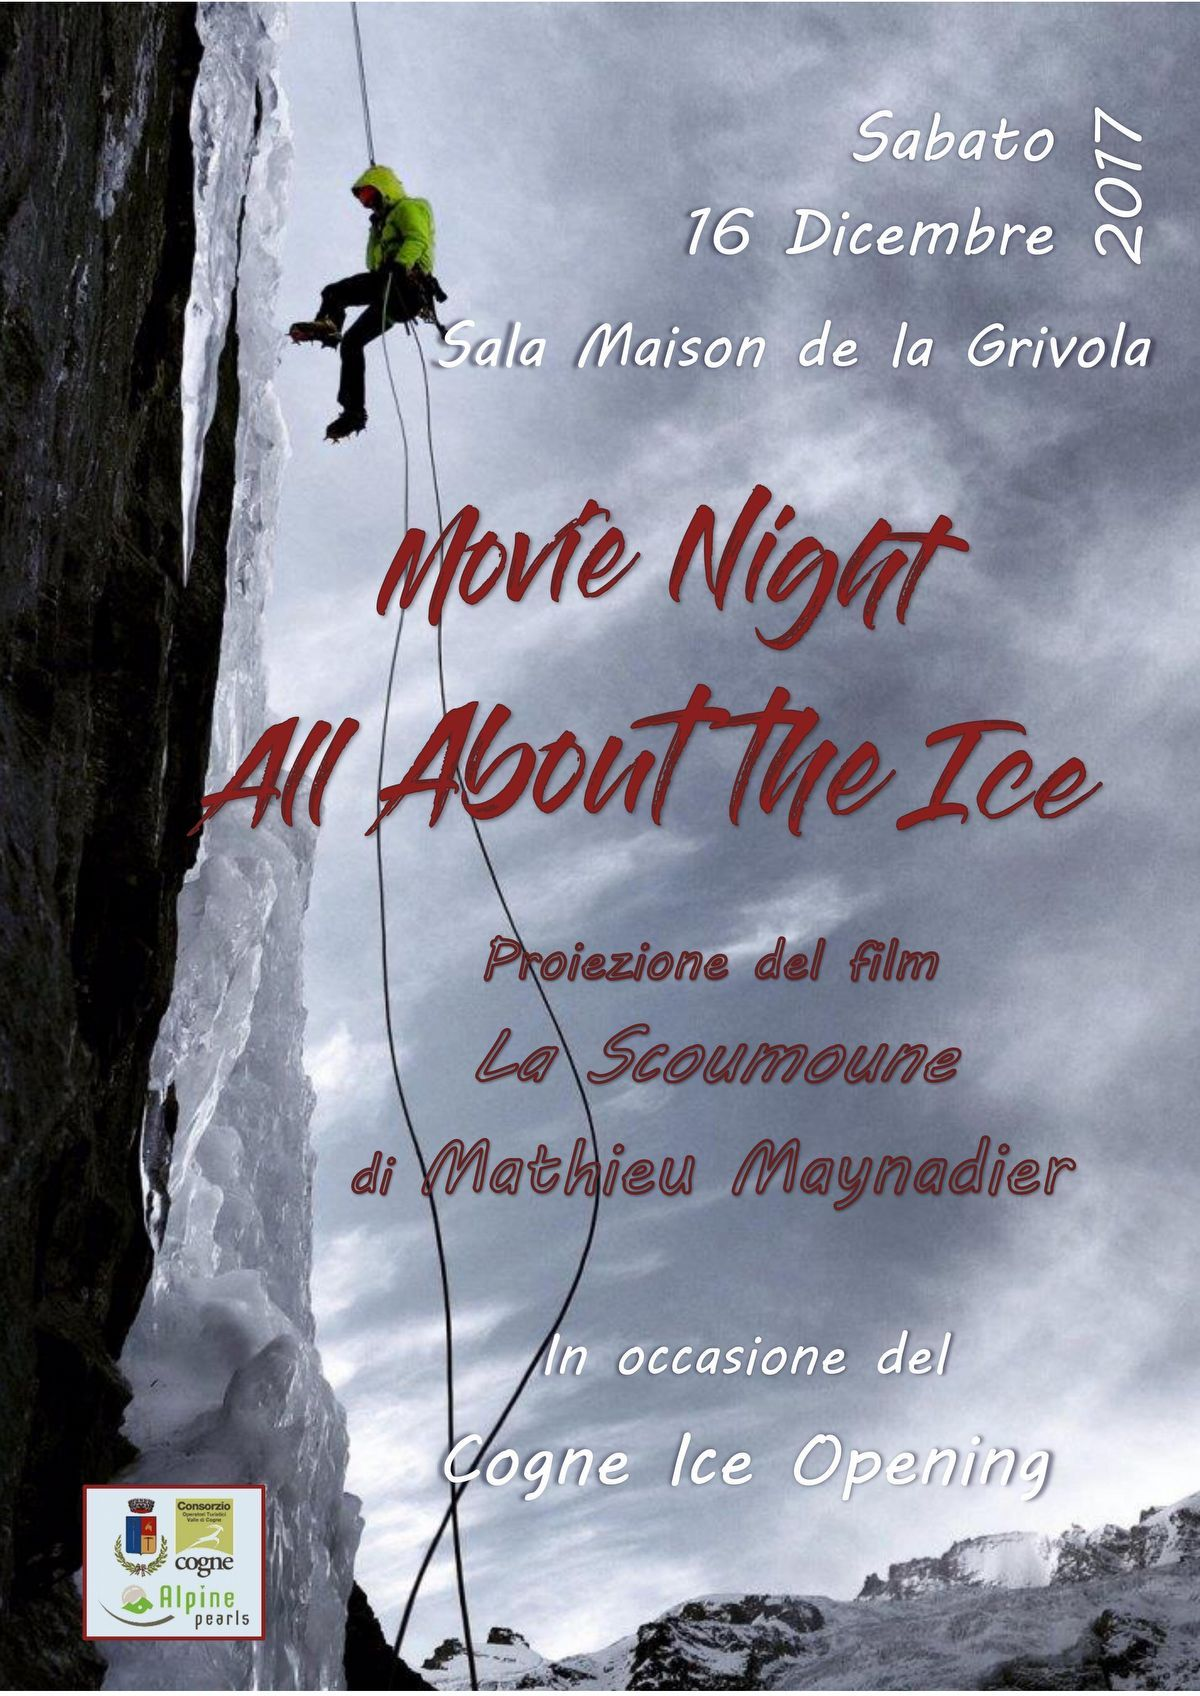 All About the Ice - Cogne Ice Opening - Valle d'Aosta